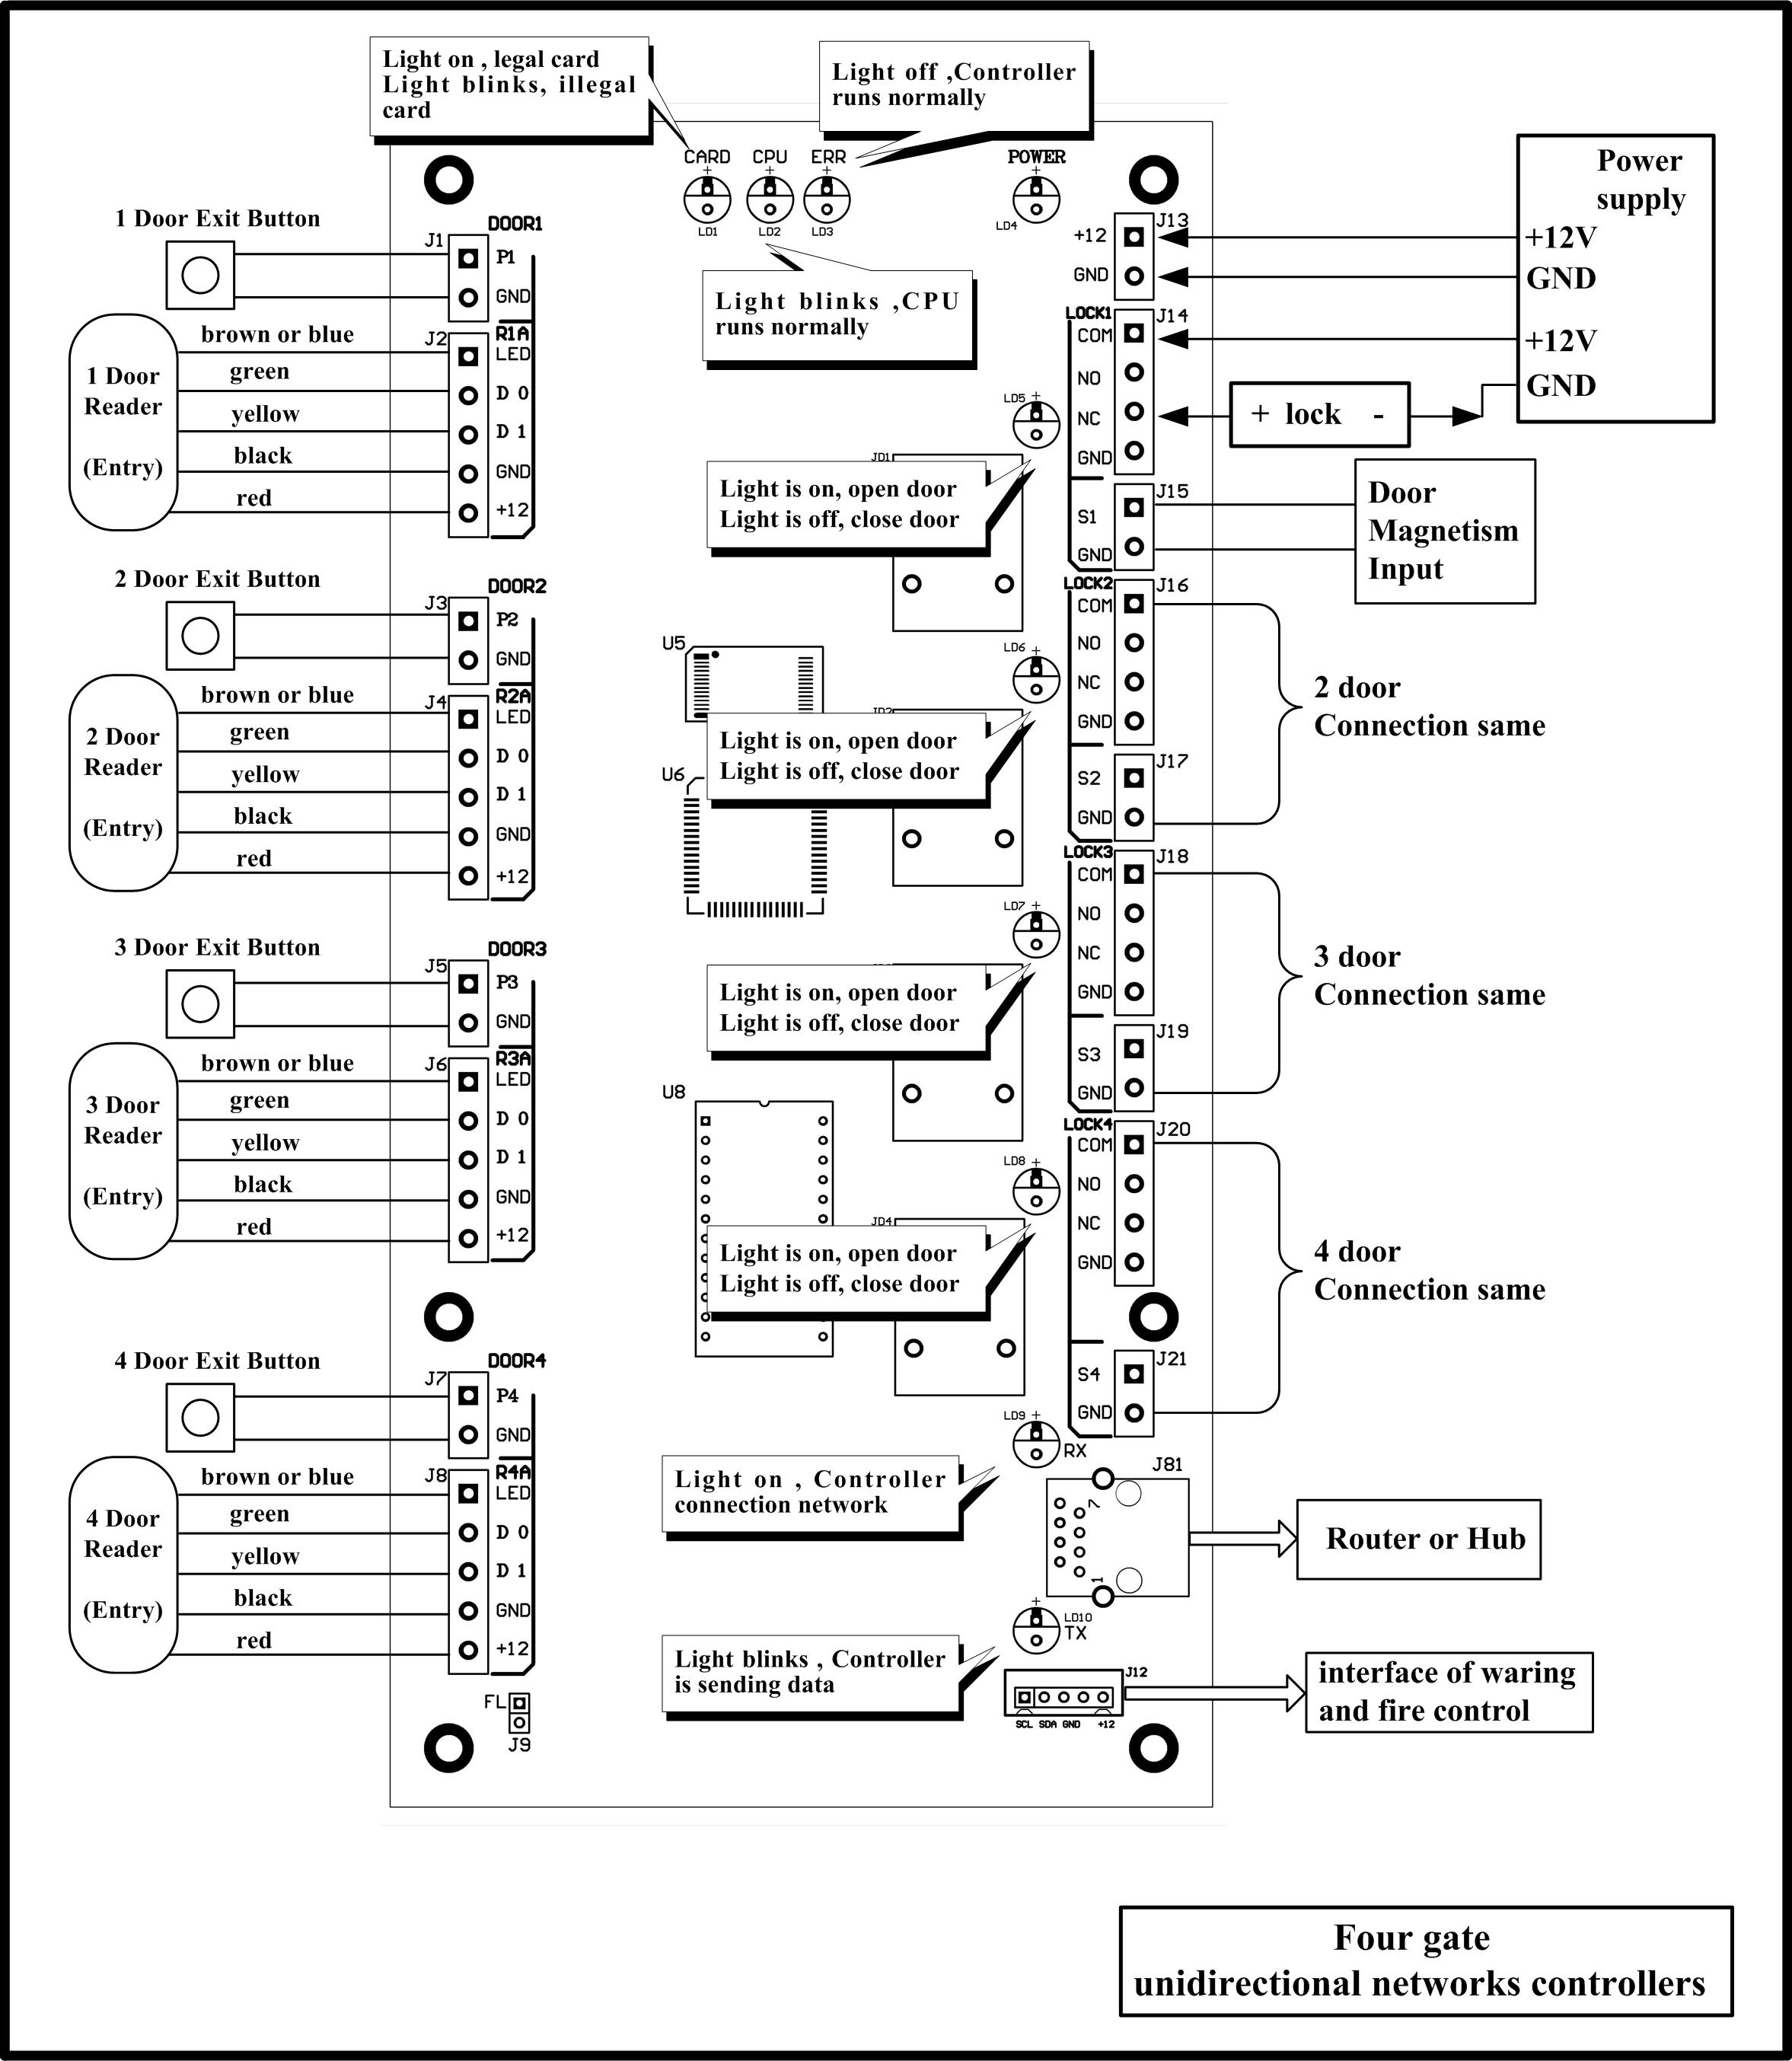 Wed94hexw0 Wiring Diagram